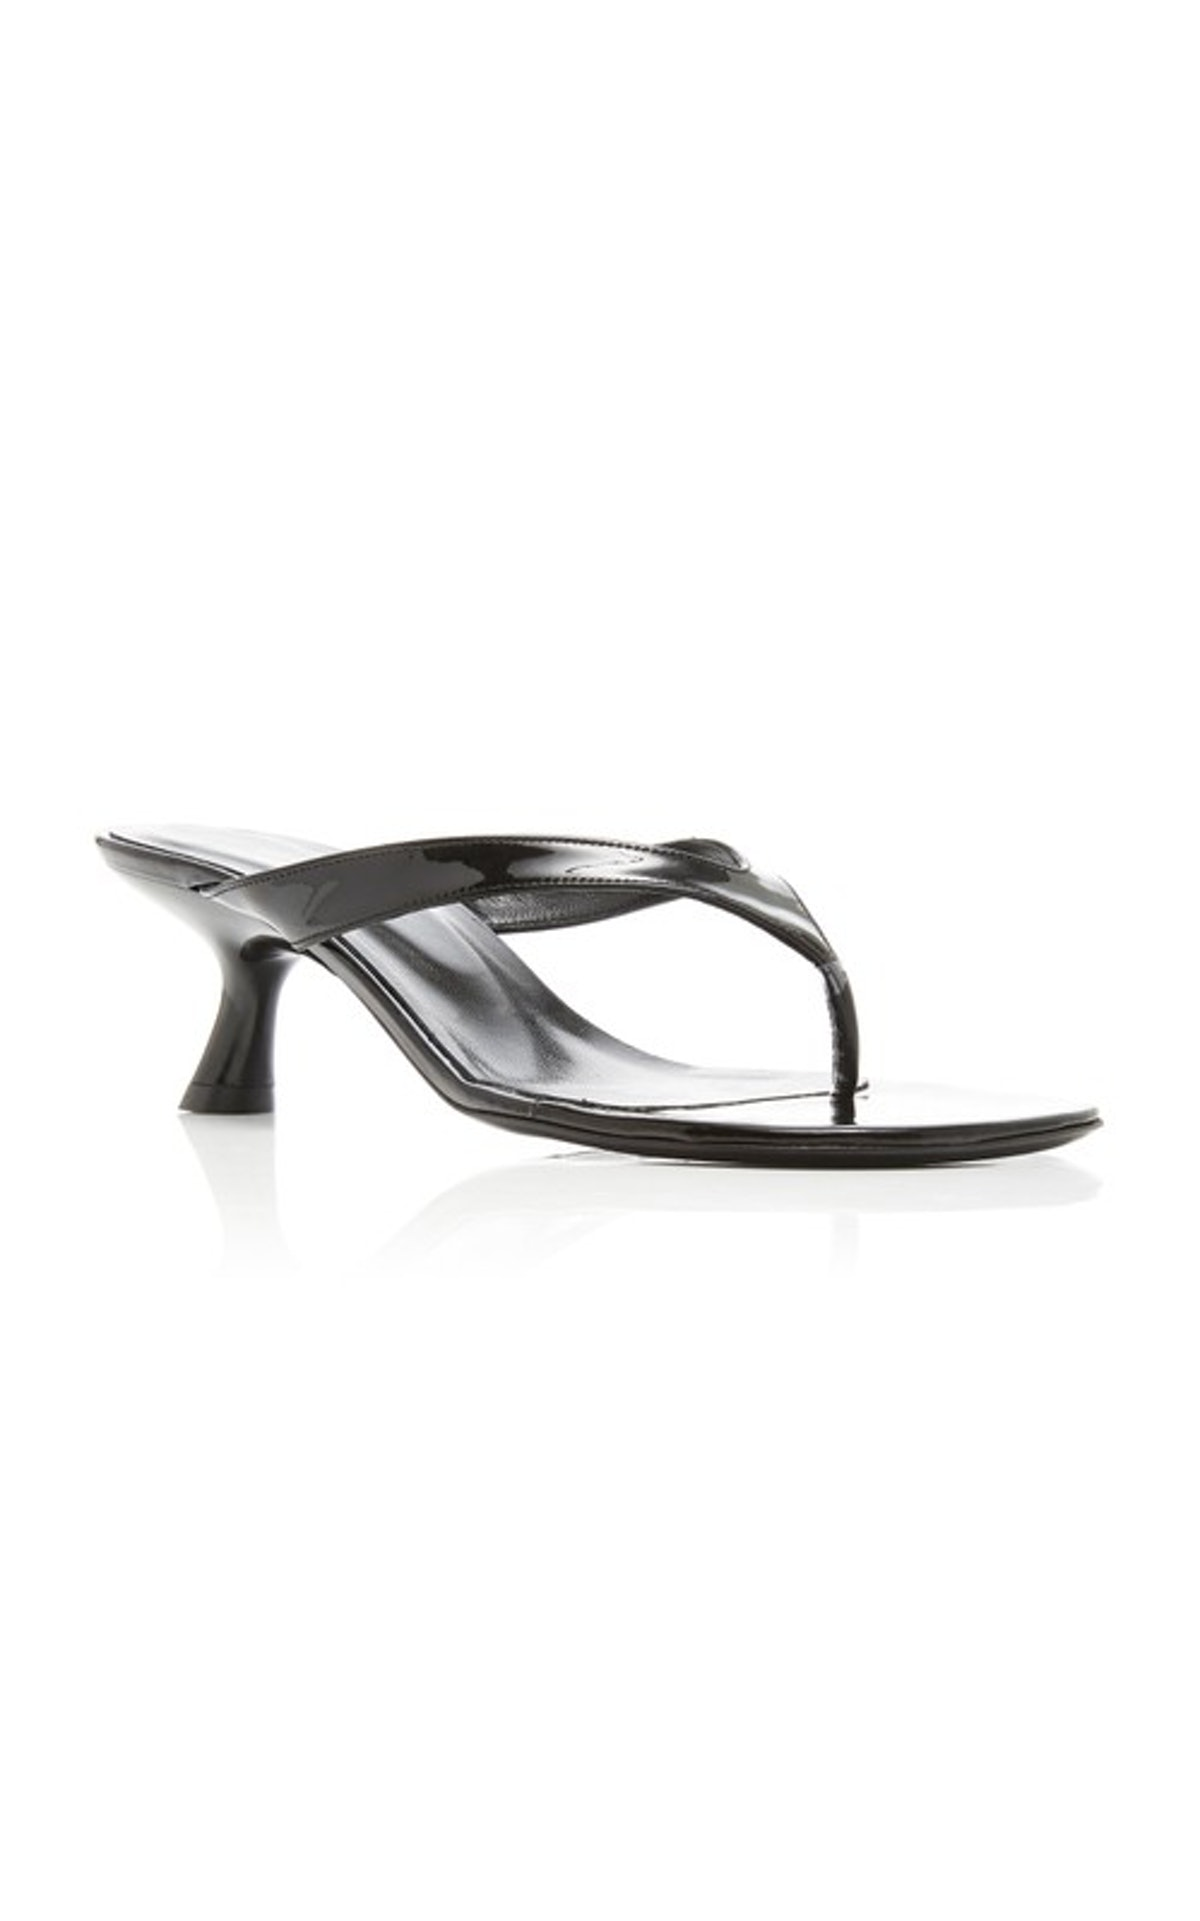 Simon Miller Beep Leather Thong Sandals